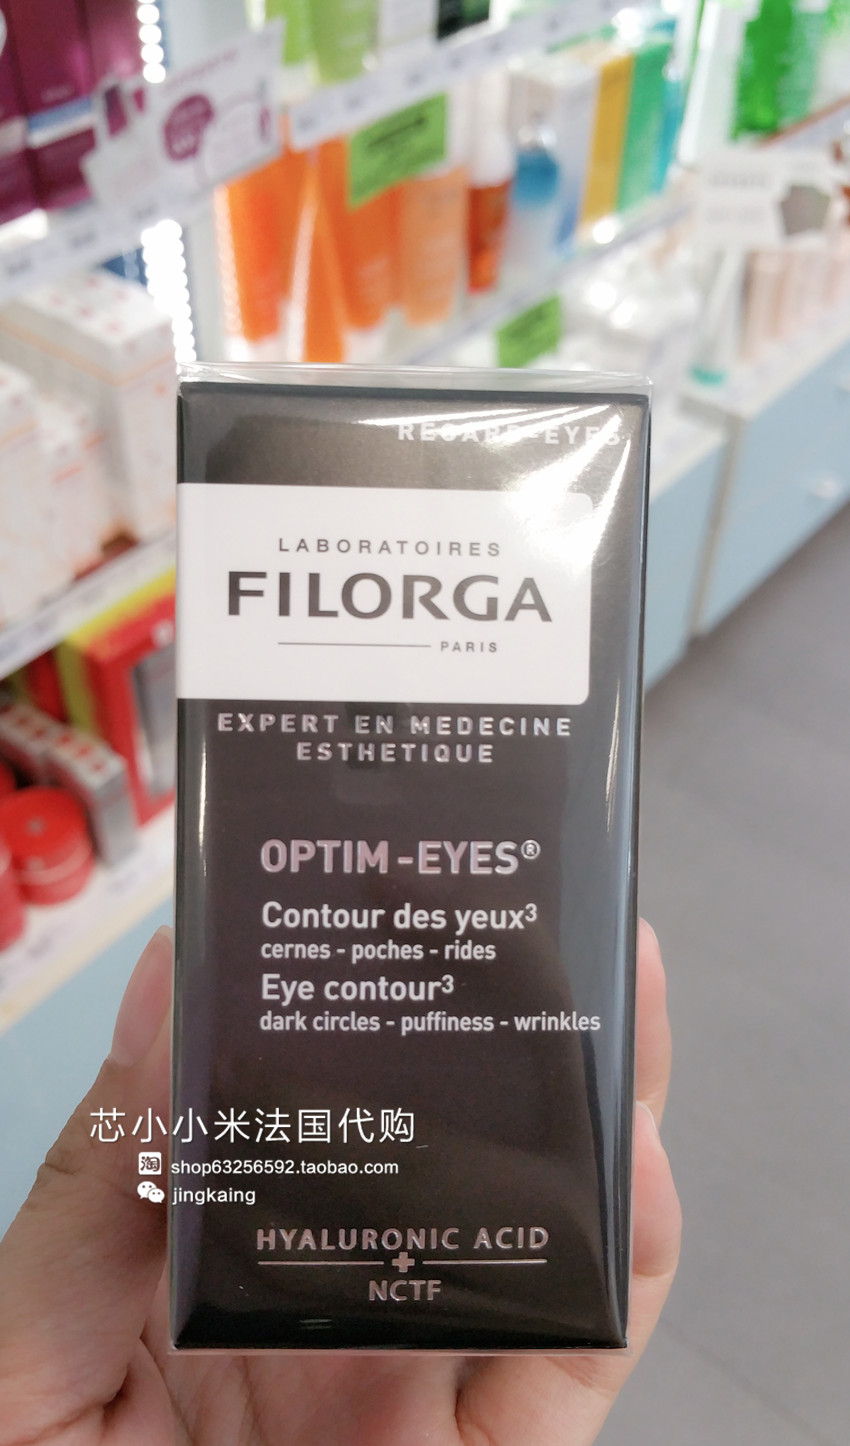 法国FILORGA菲洛嘉OPTIM EYES360雕塑眼霜 抗老眼霜消黑眼圈浮肿